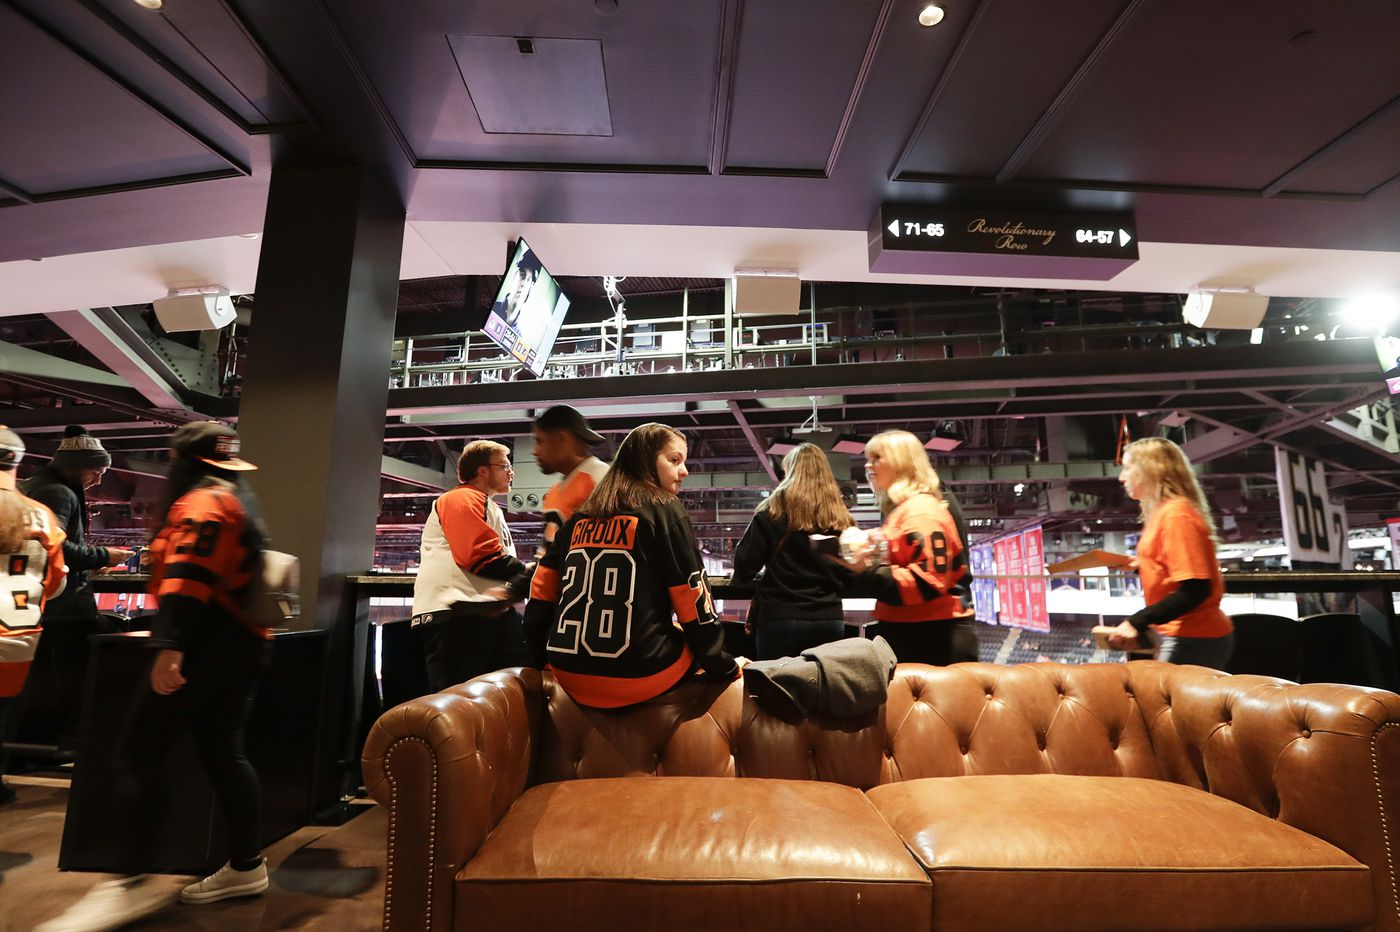 Loyal fans are getting older, so Flyers are chasing millennials with rage rooms, cocktail bars and Gritty